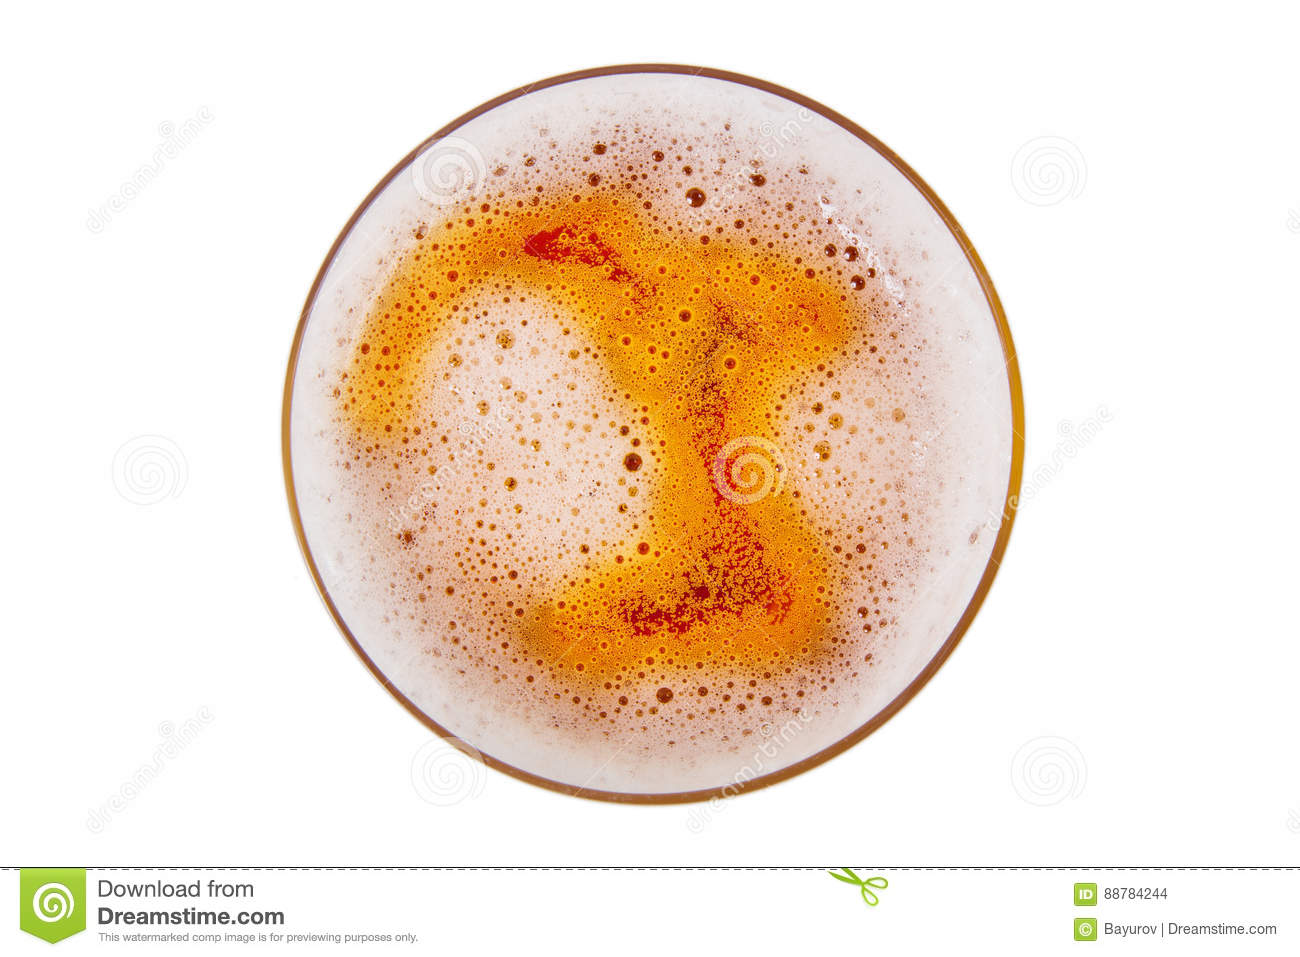 Beer in glass with foam.